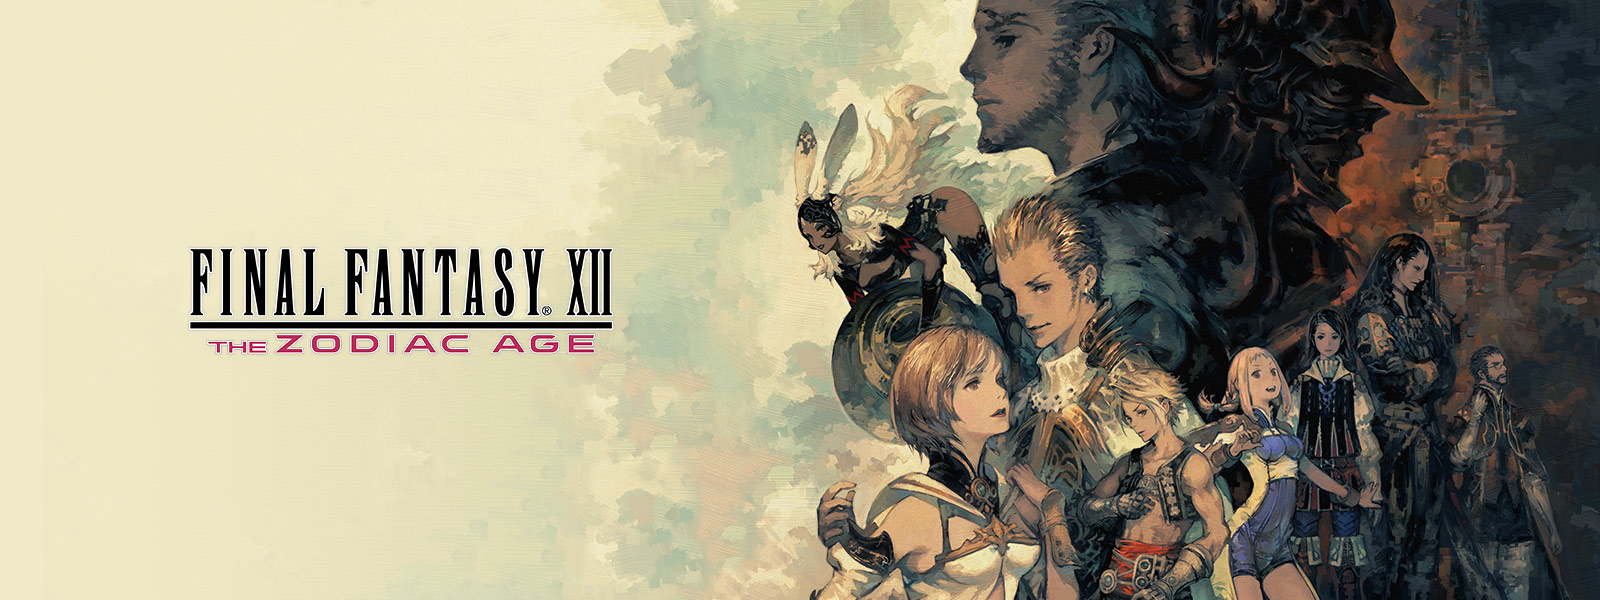 FINAL FANTASY XII THE ZODIAC AGE 角色的拼貼